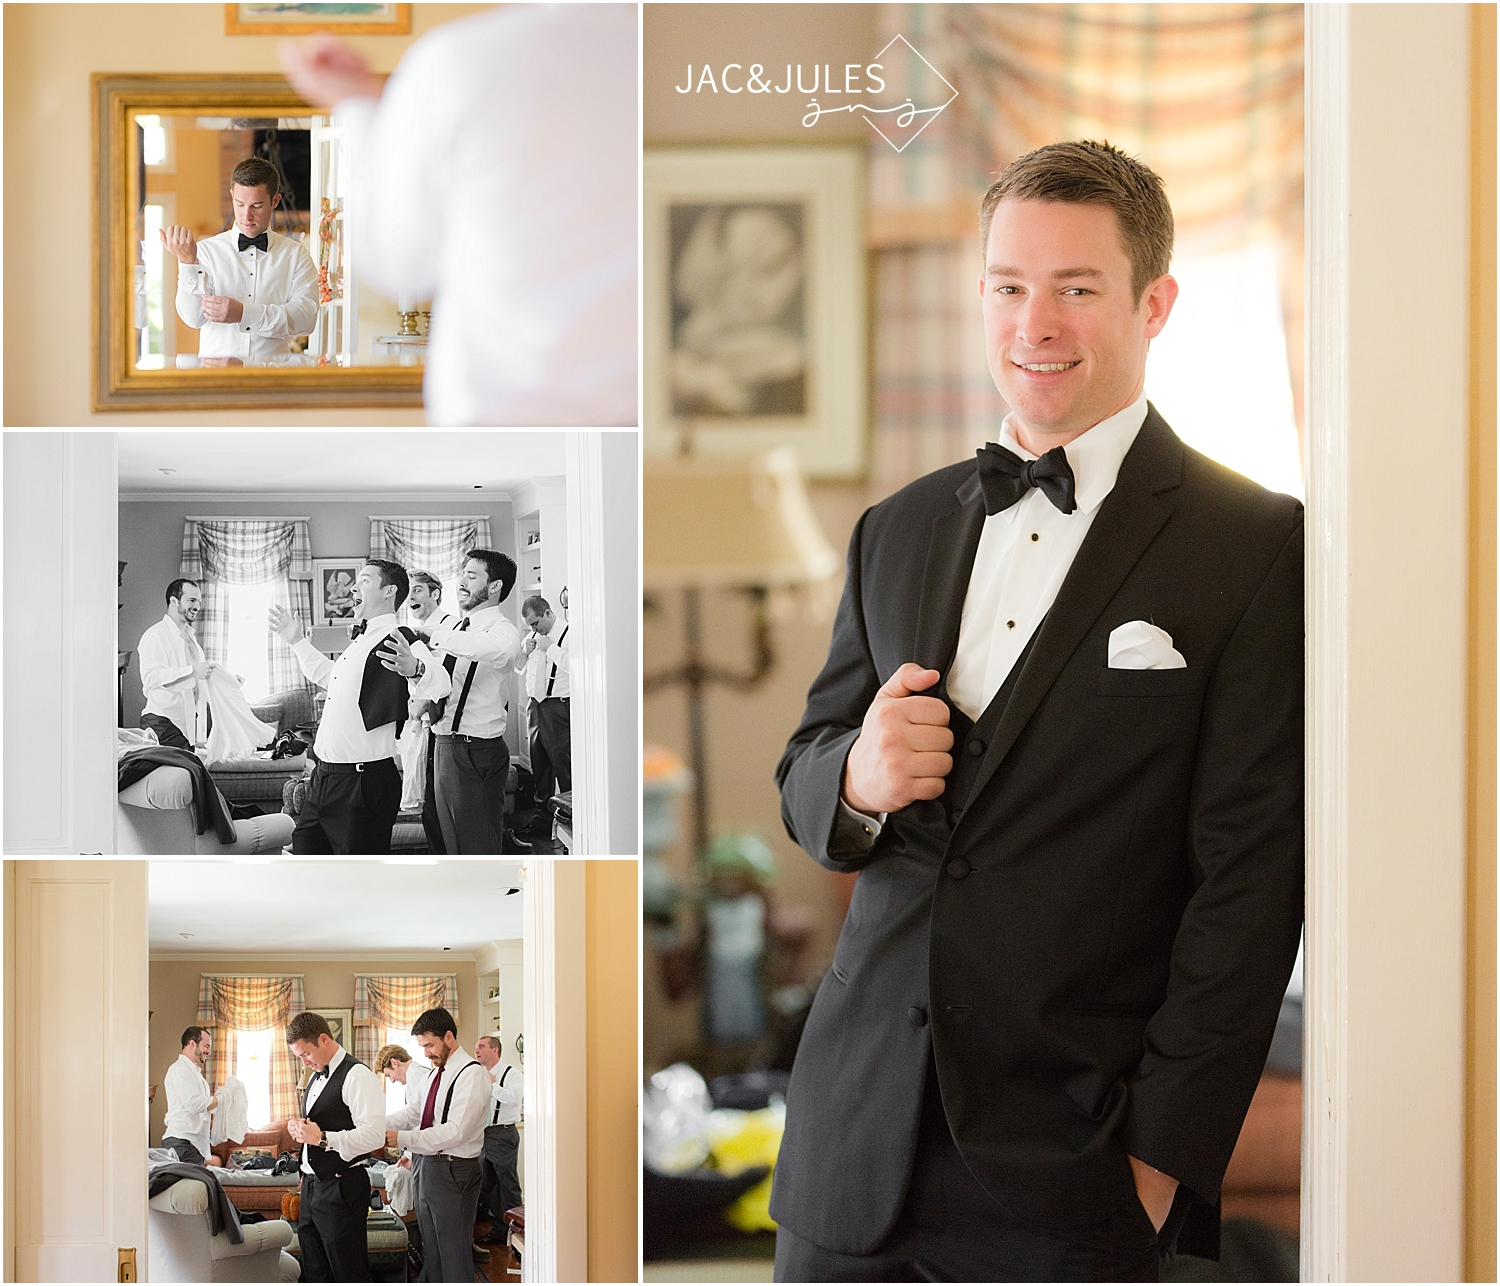 jacnjules photograph groom getting ready for his wedding in Allenwood, NJ